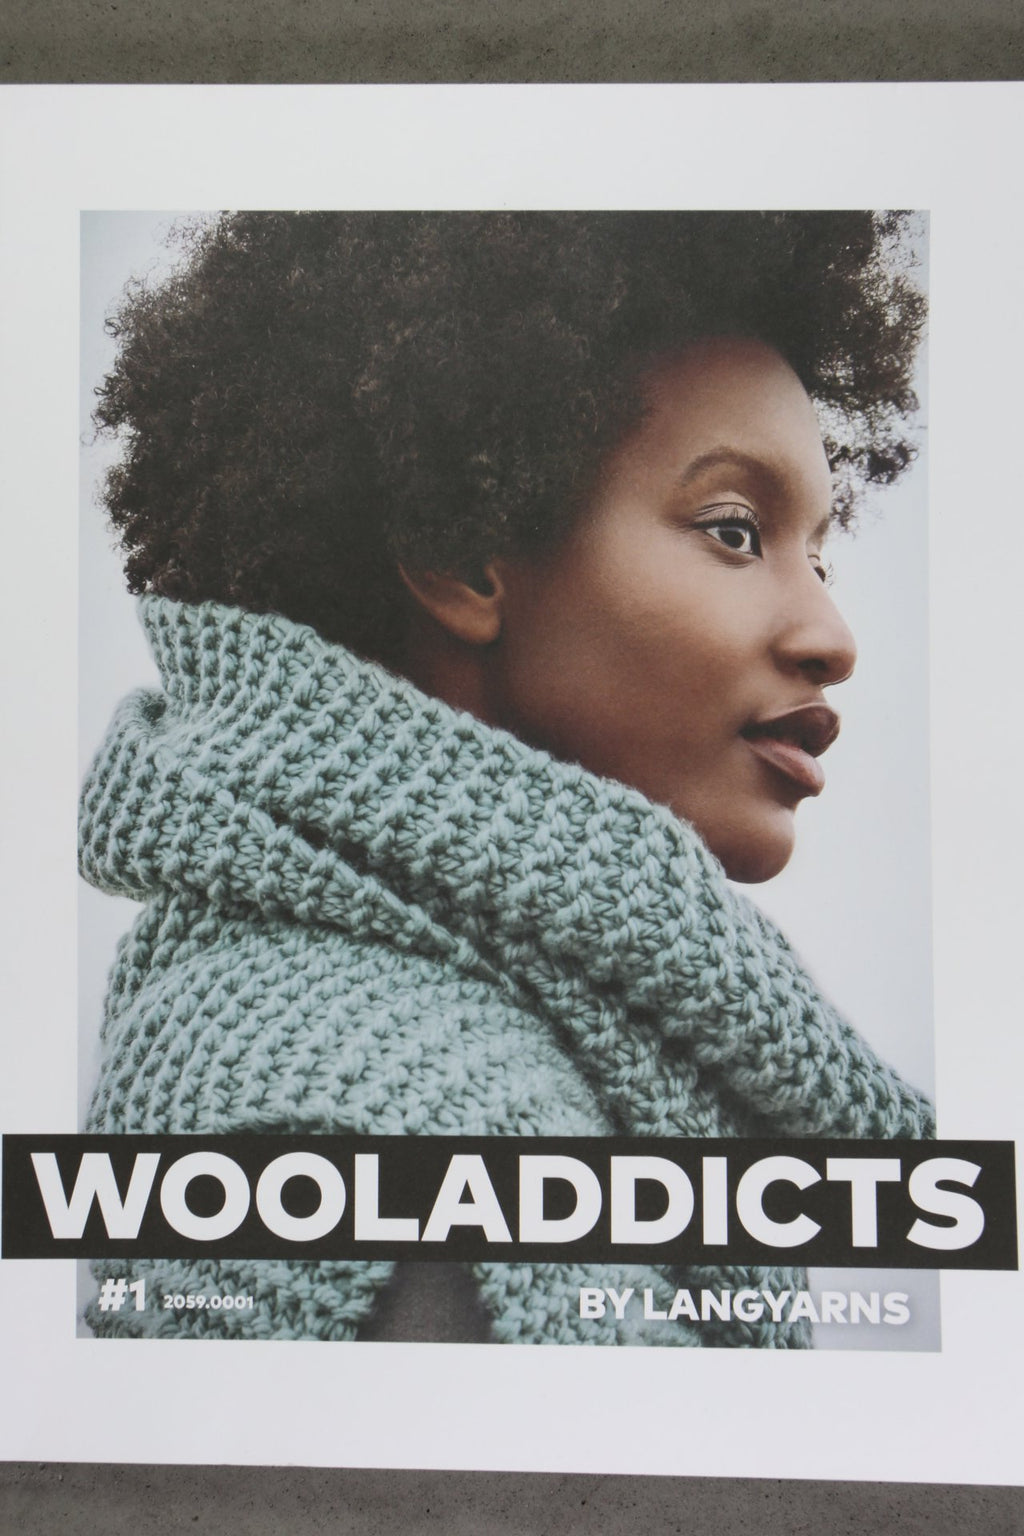 Wool Addicts - Patterns and Look Book